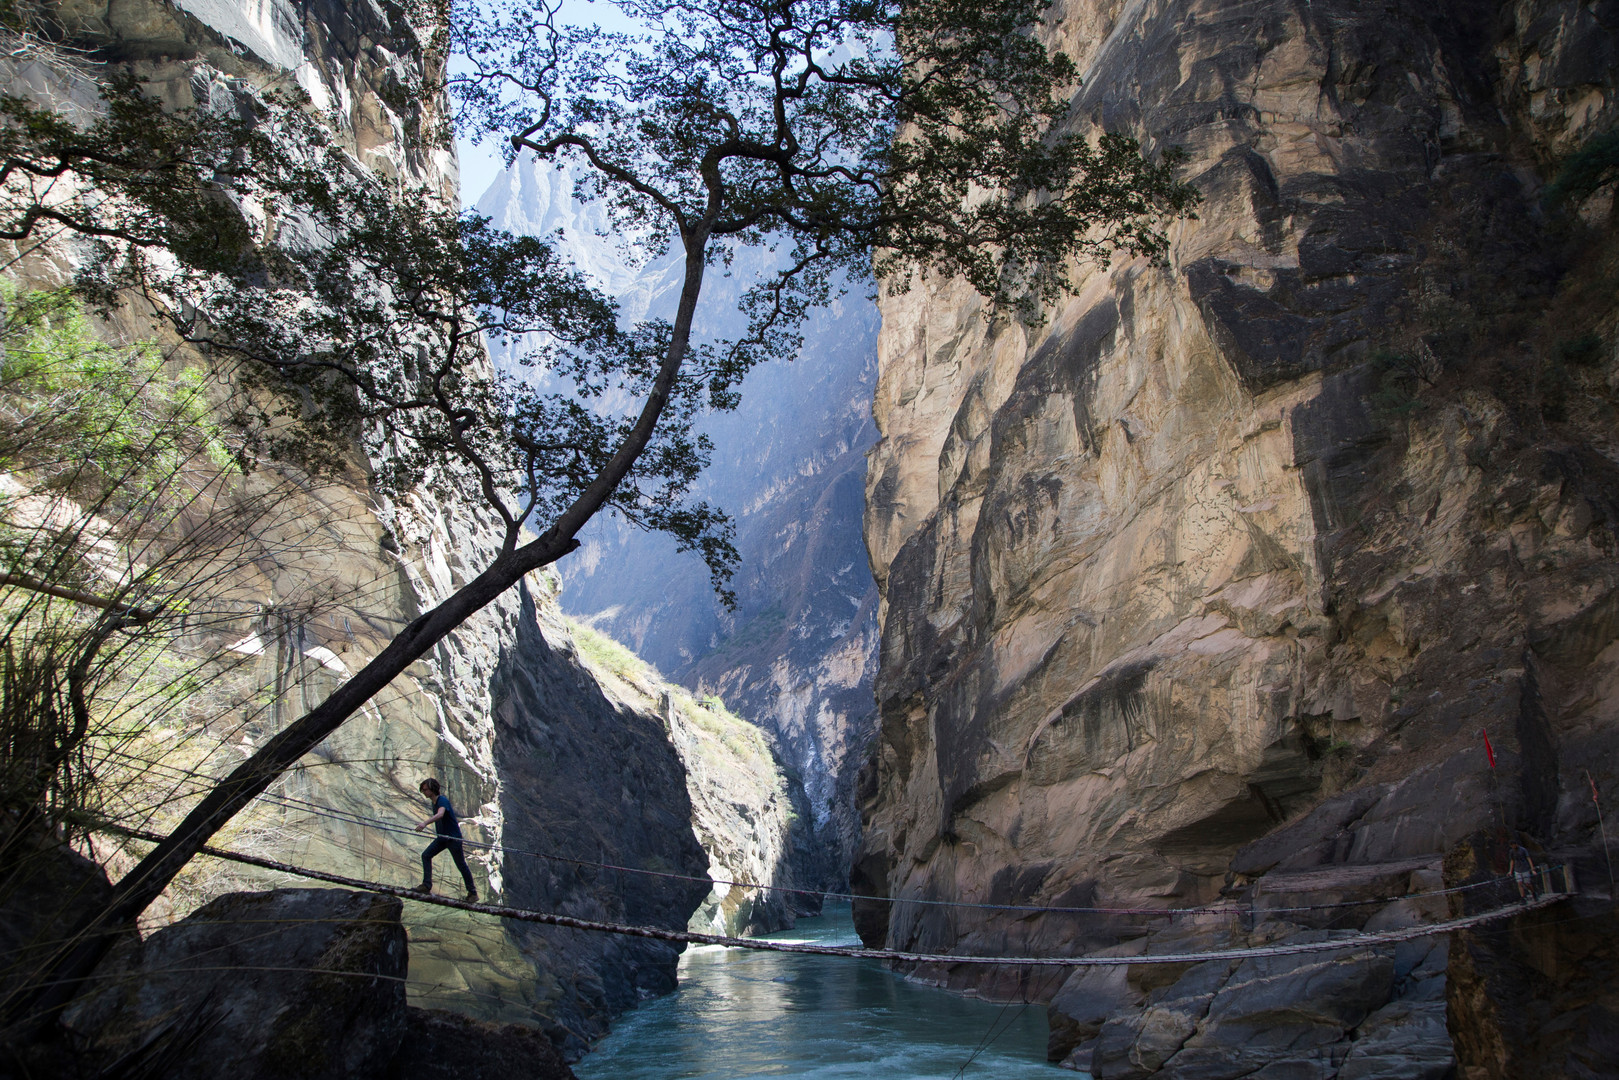 Tiger leaping Gorge bridge_High Res_1395